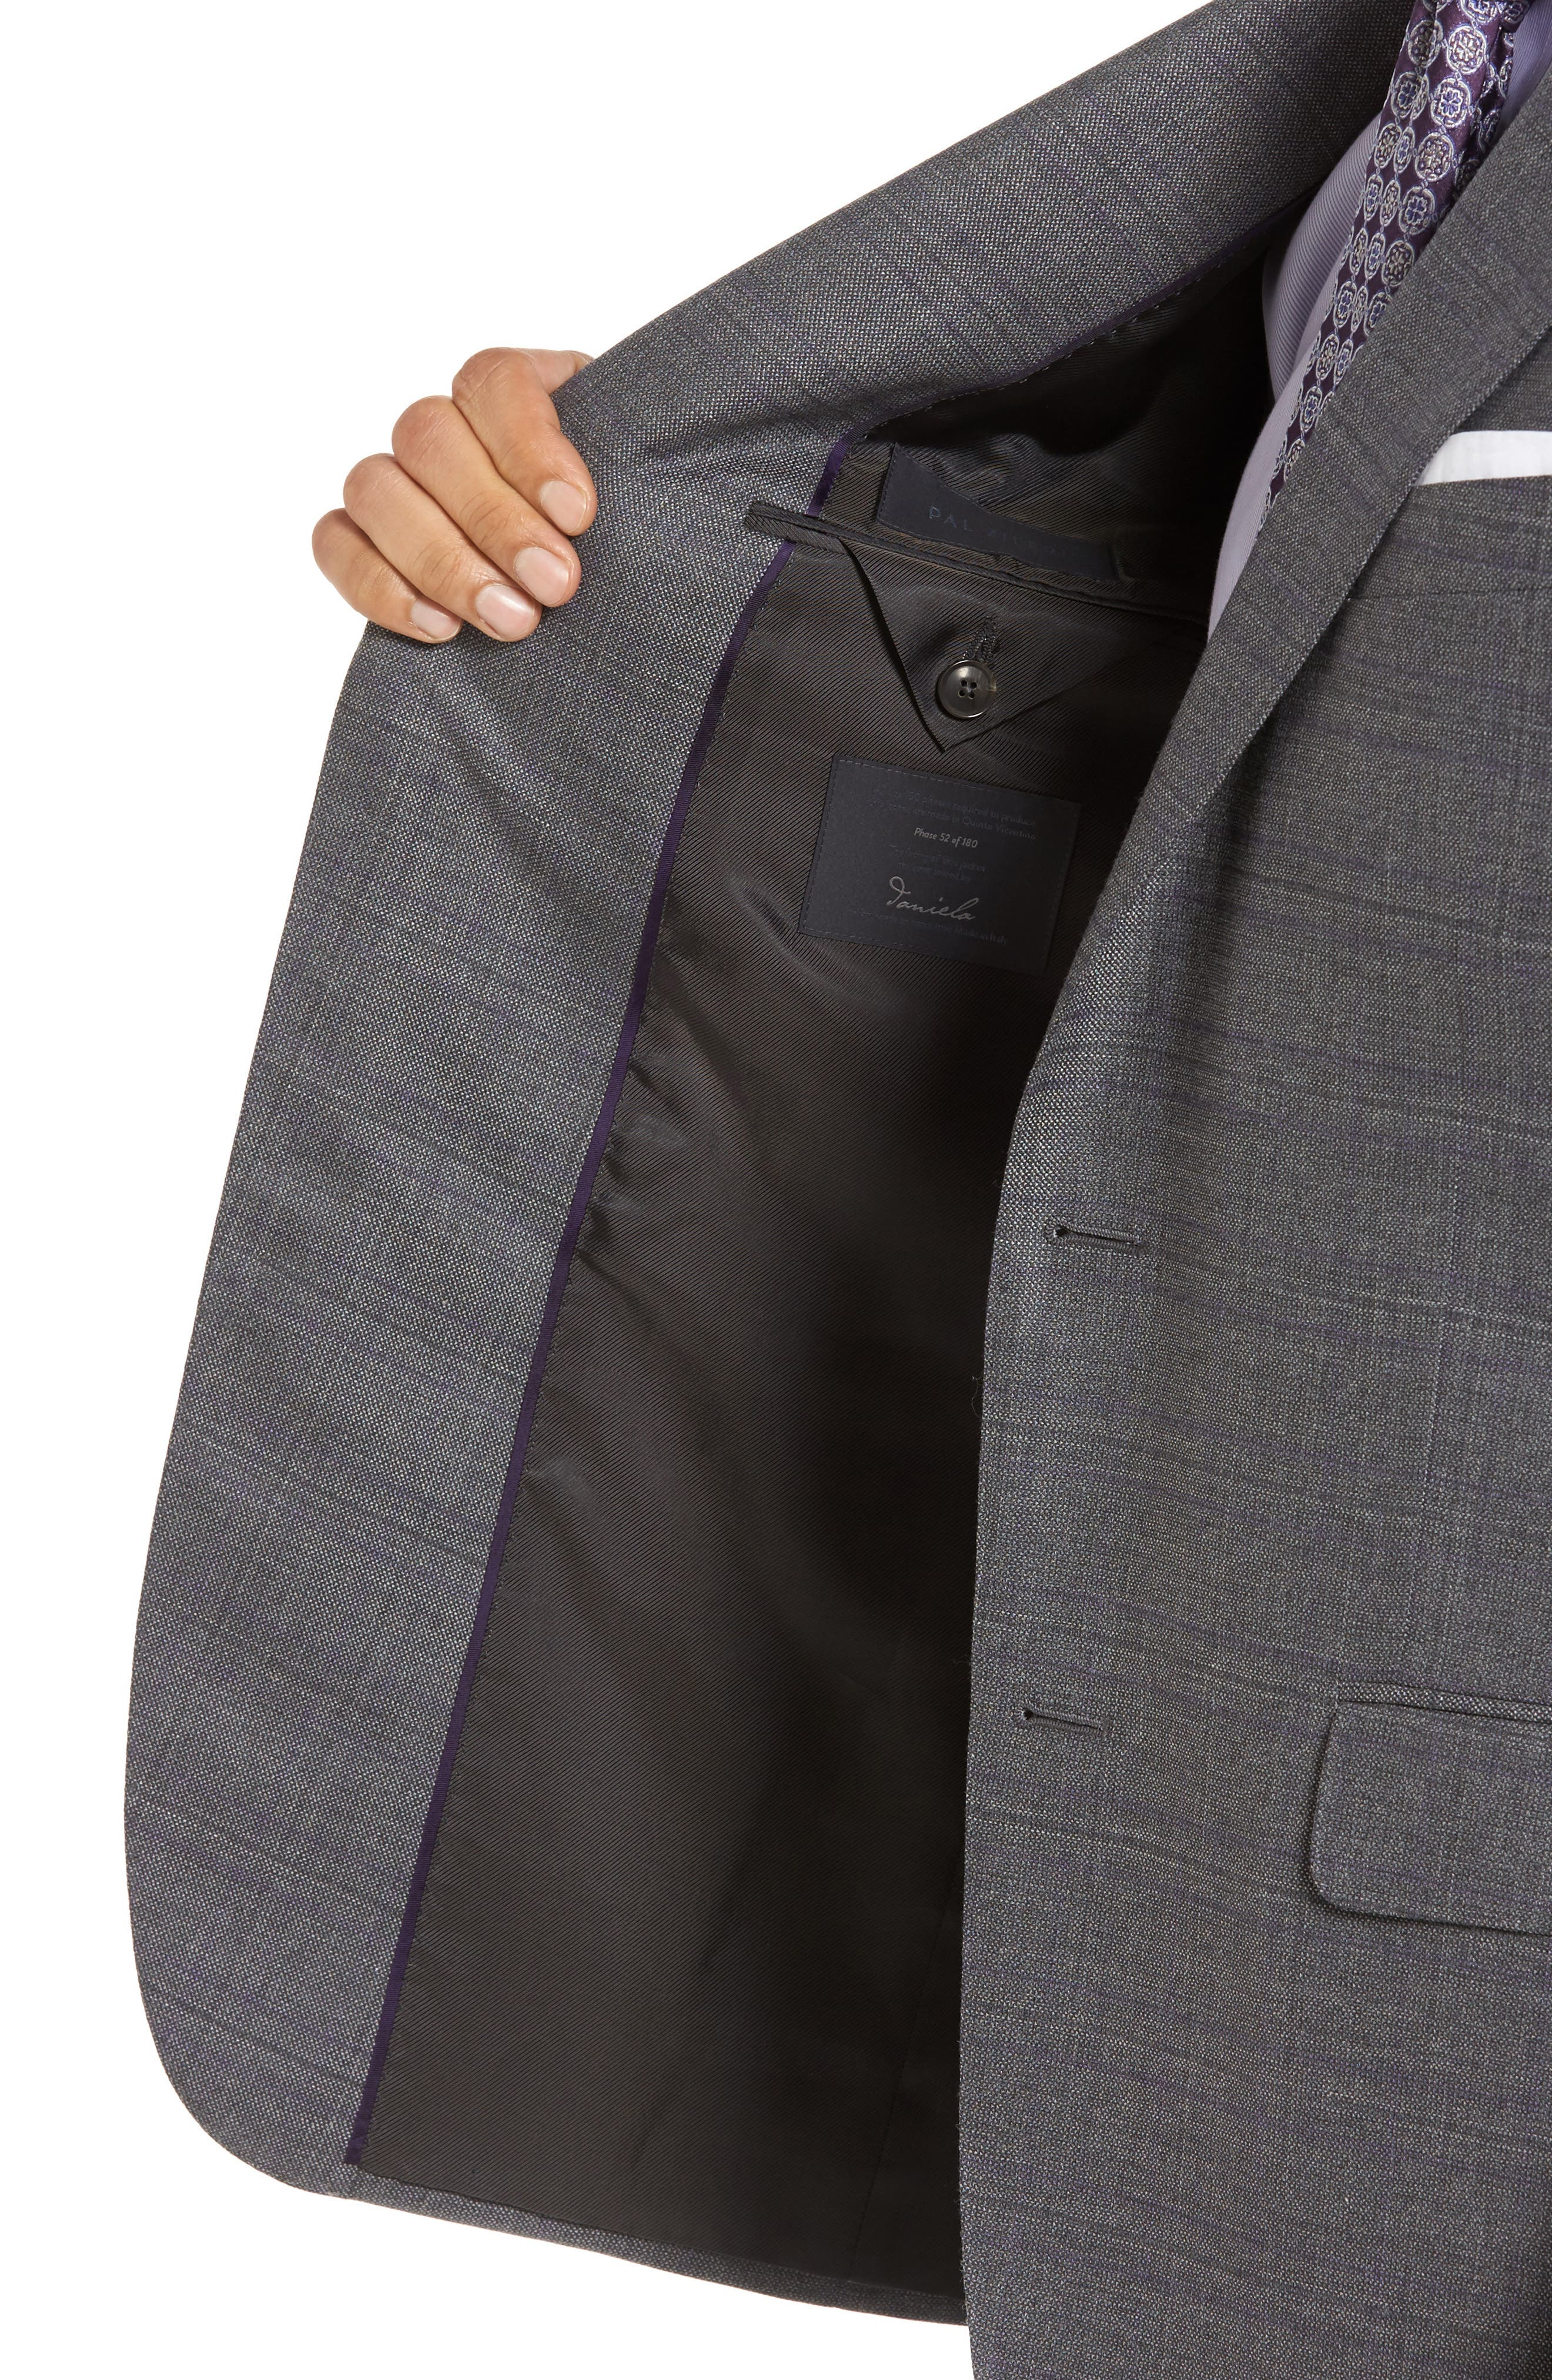 Classic Fit Windowpane Wool Sport Coat,                             Alternate thumbnail 4, color,                             Grey